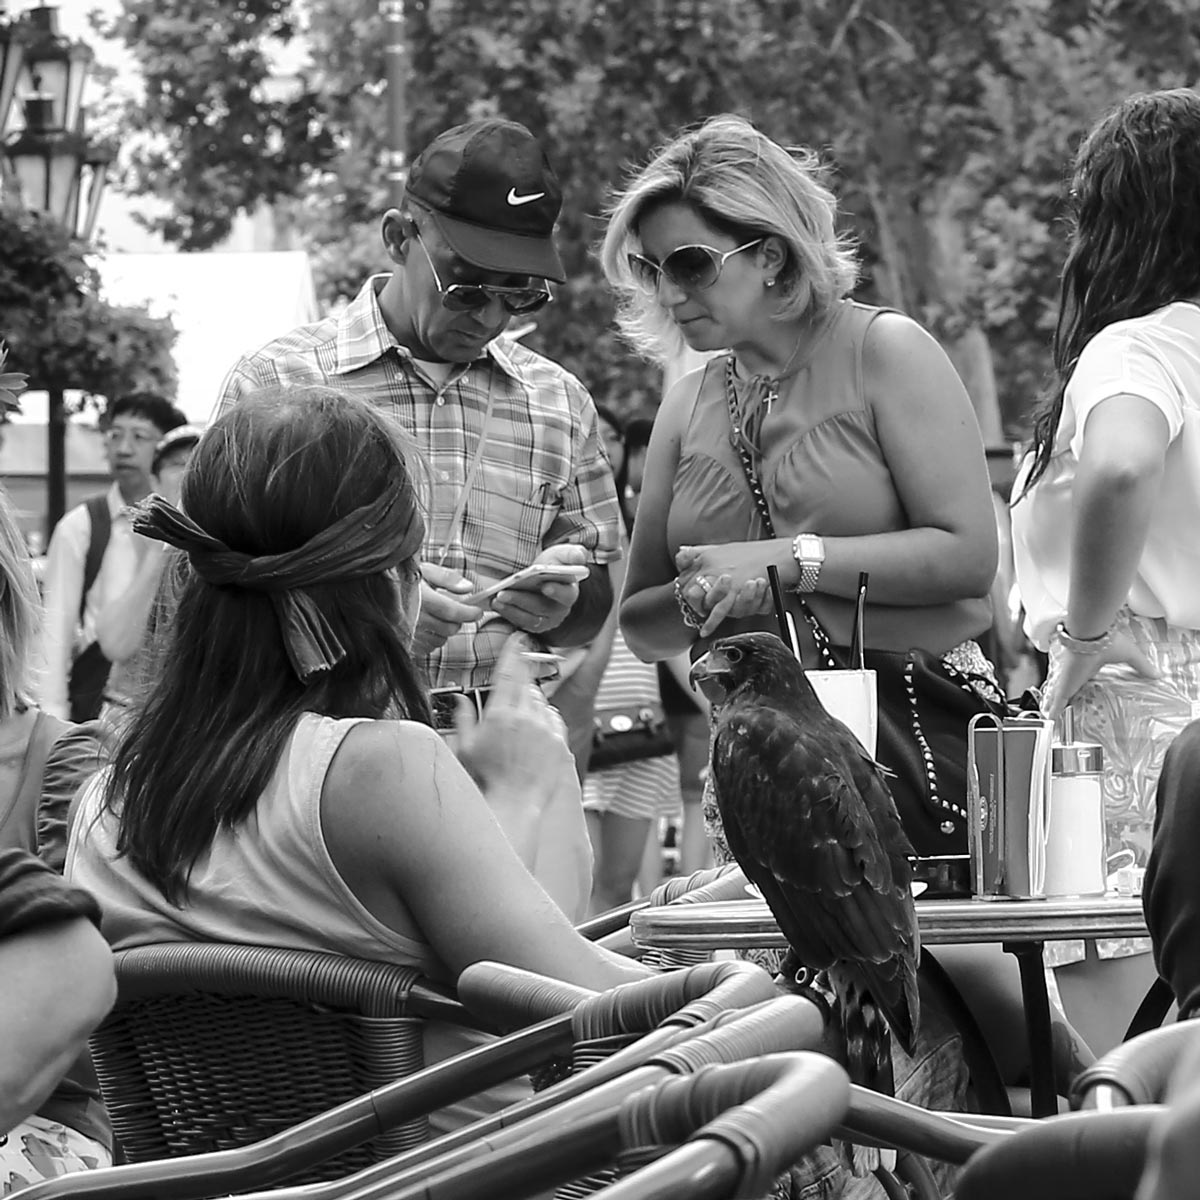 Street Photography - Face to Face - Did we get a good photo?